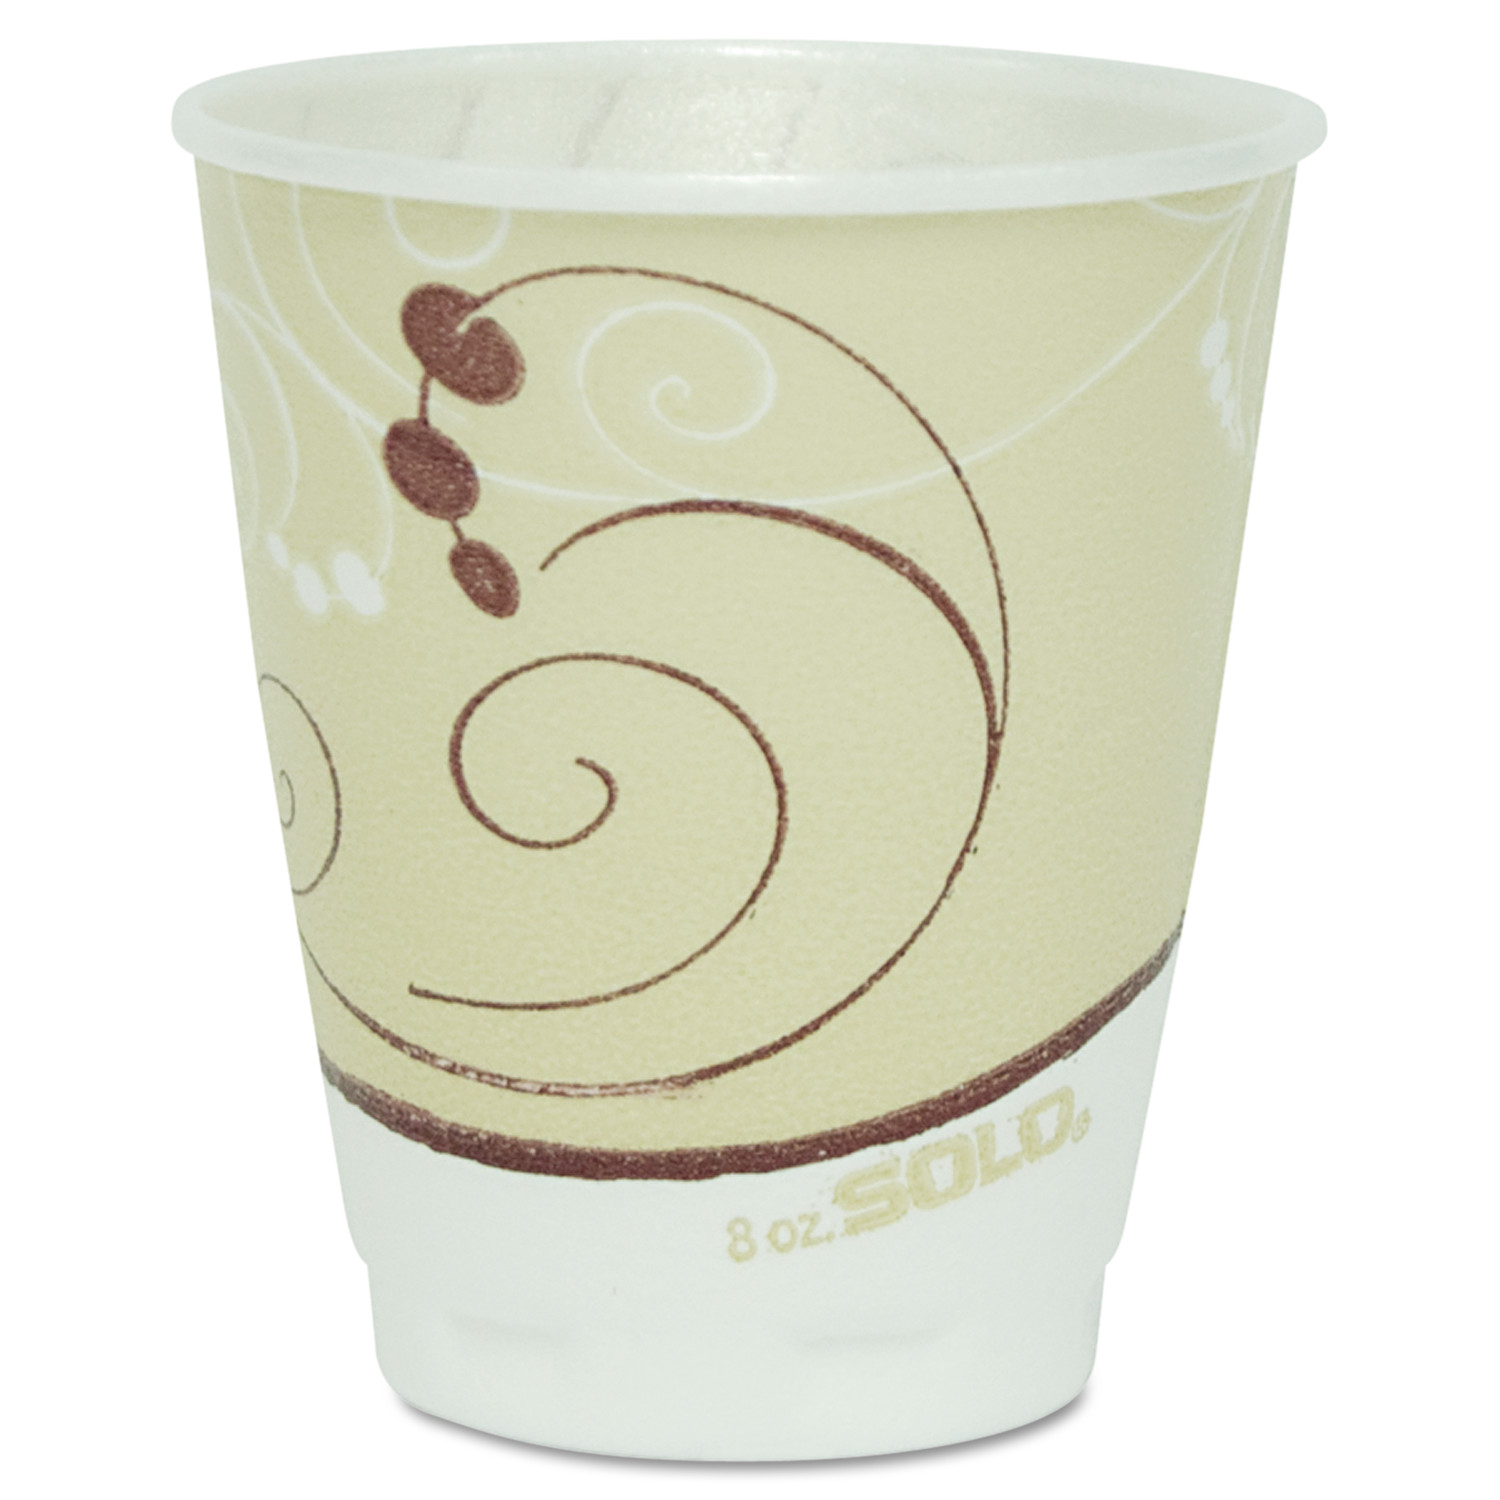 SOLO Cup Company Symphony Design Trophy Foam Hot/Cold Drink Cups, 8 oz., Beige, 100/Pack